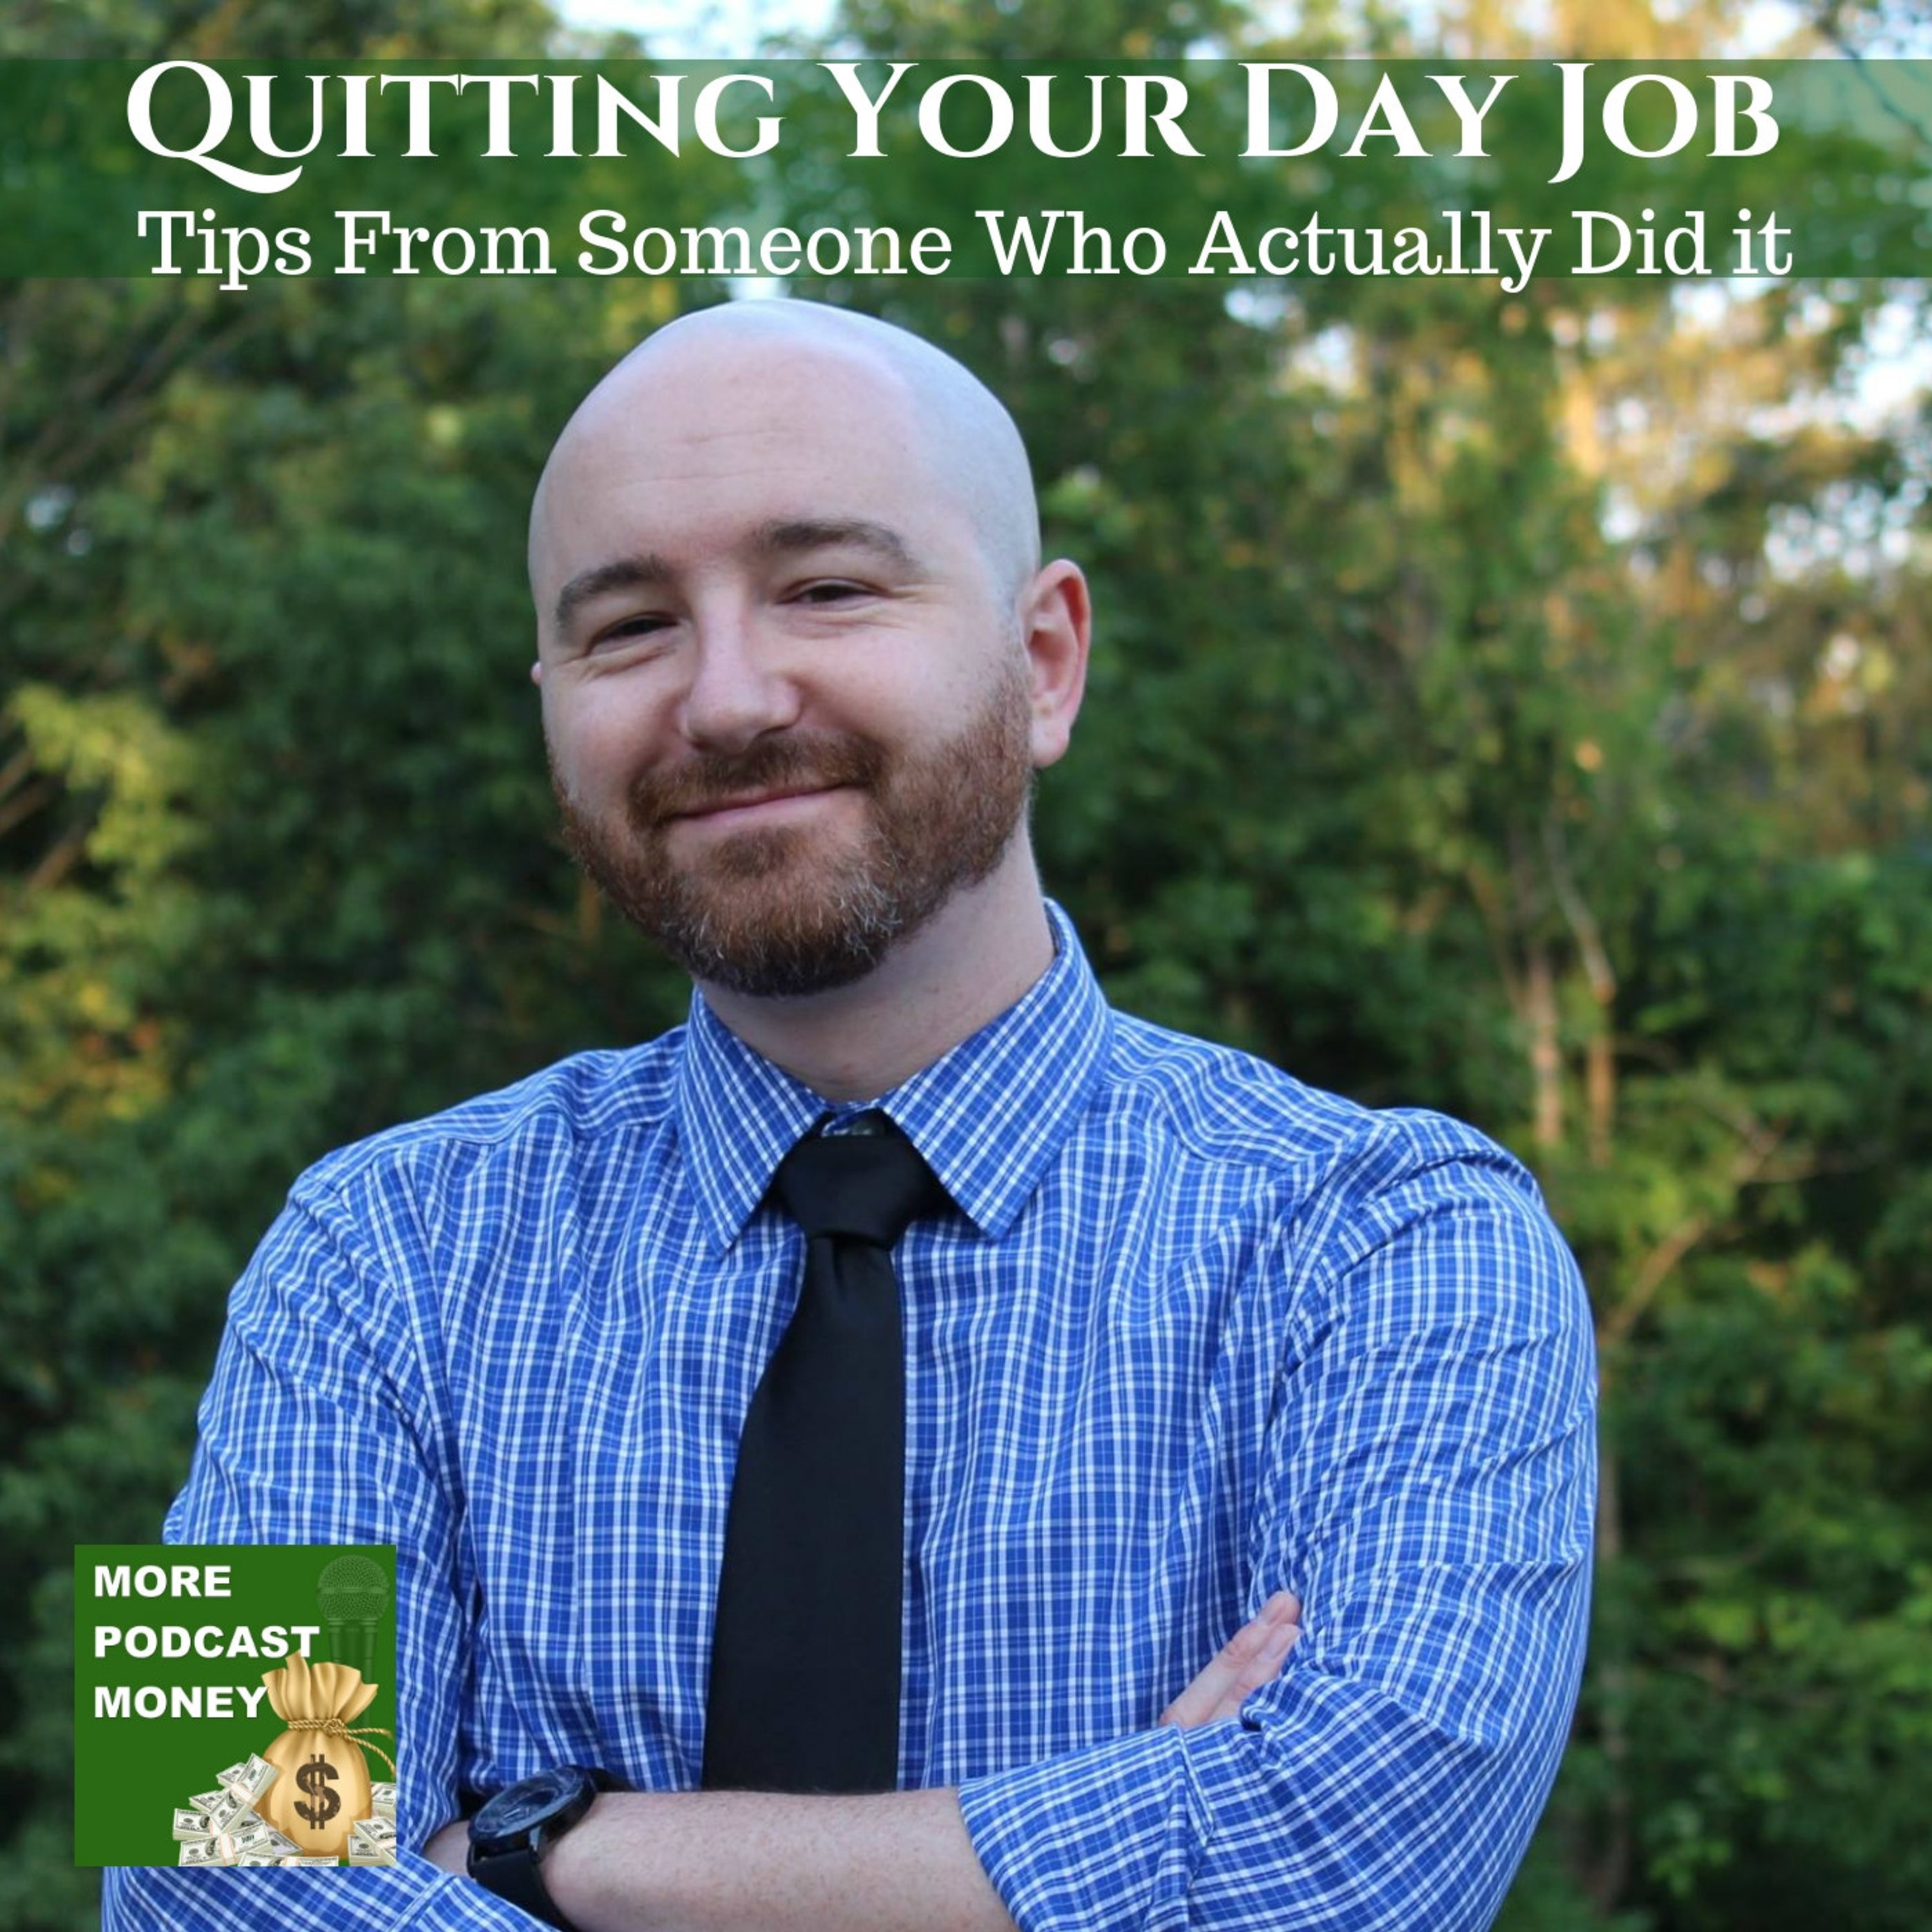 How To Quit Your Day Job - Tips From Someone Who Actually Did it